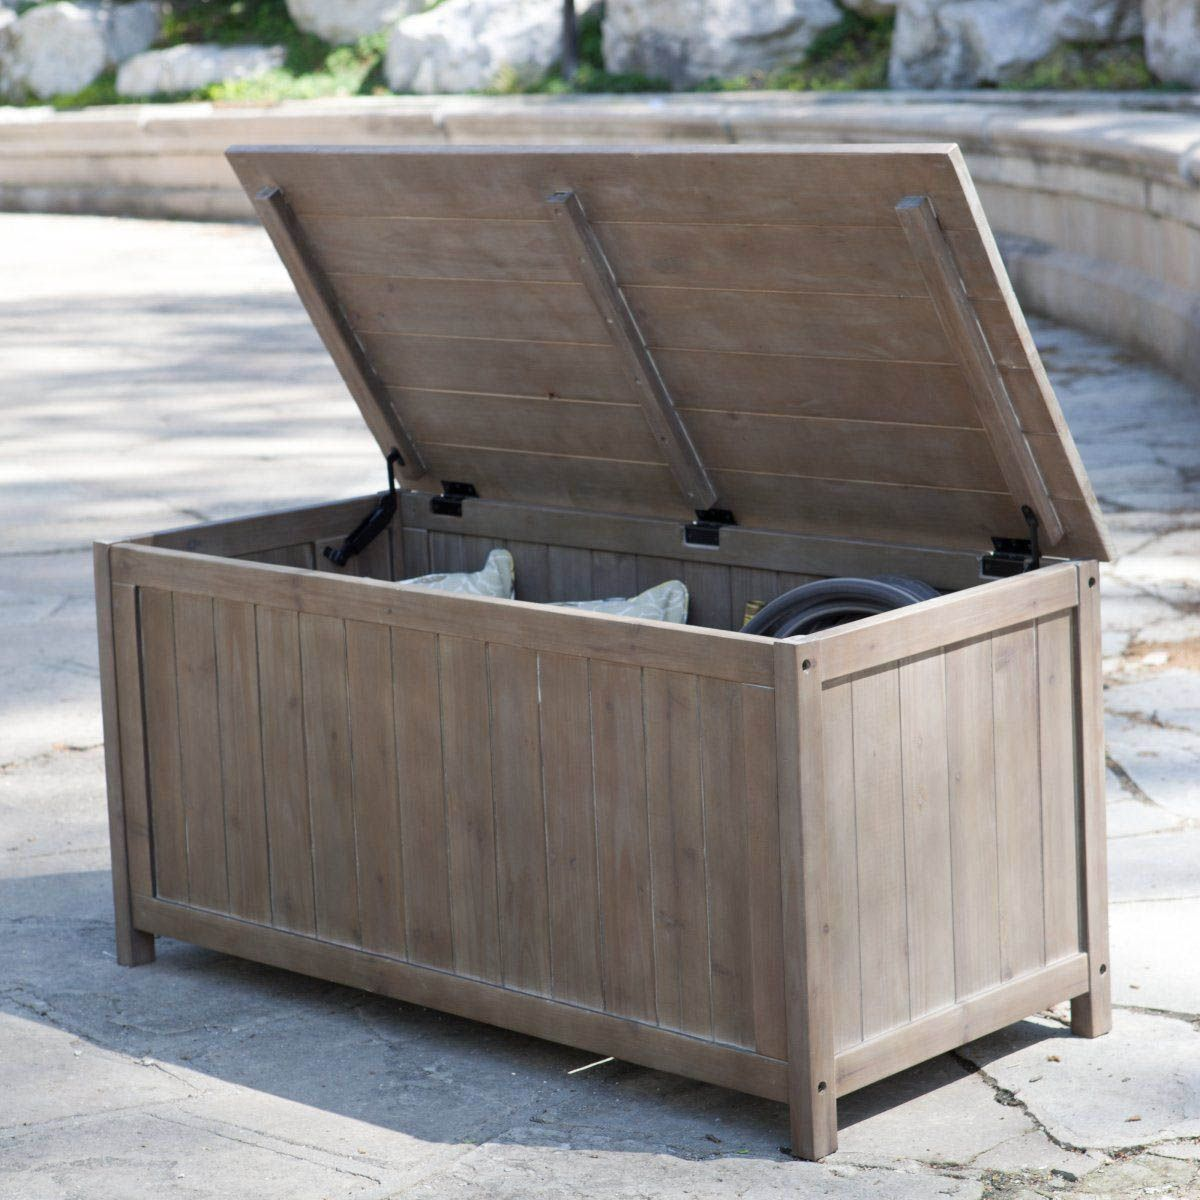 Artistic Patio Area Storage Space Ideas Patio Storage Patio